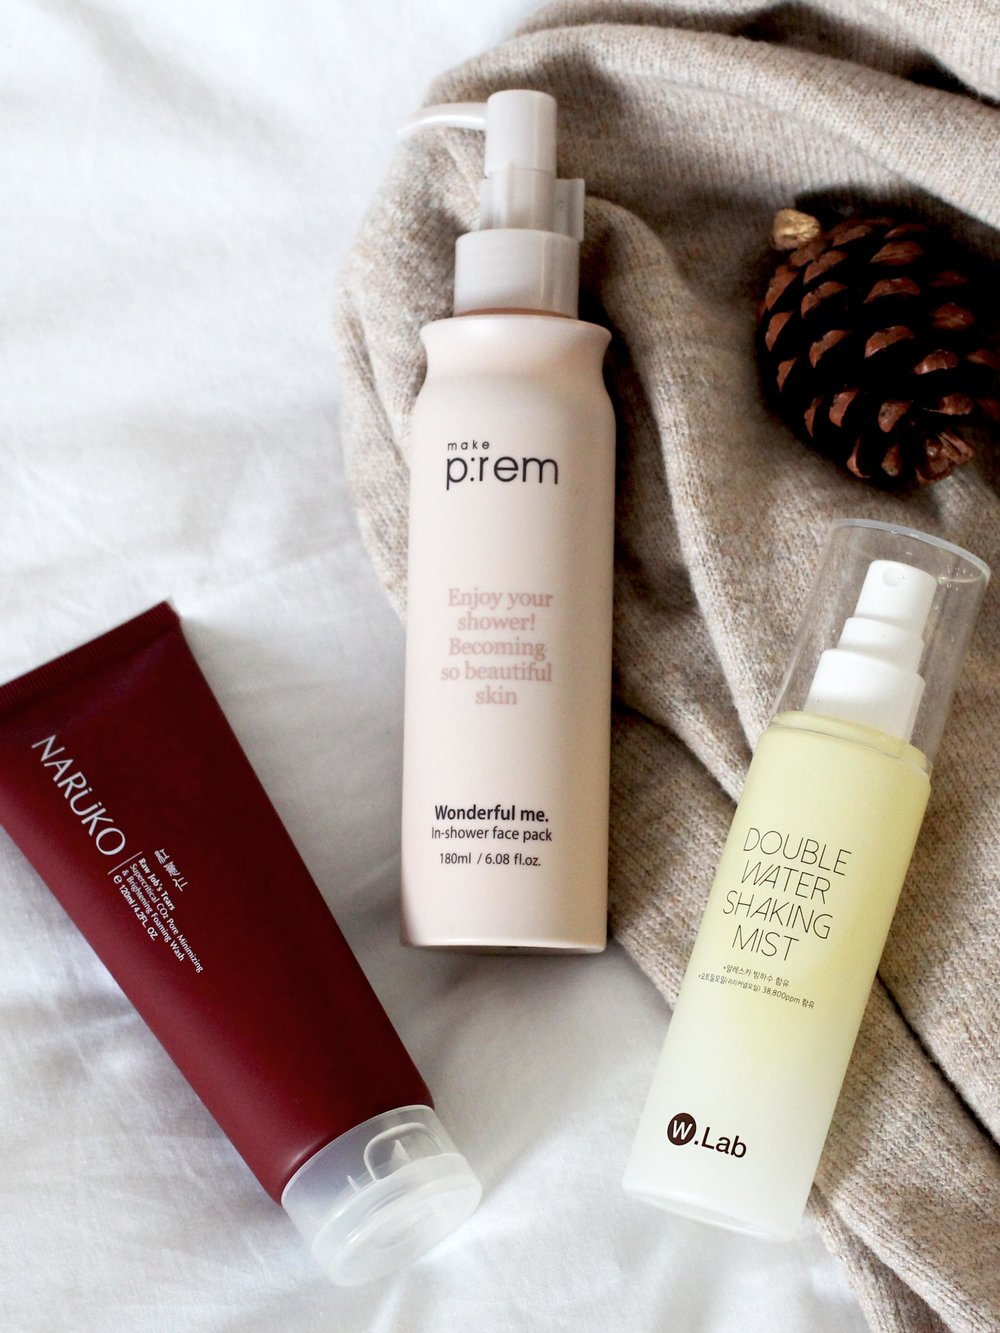 New Year, New Skincare. Featuring Korean and Taiwanese beauty brands Make P:rem, W Lab and Naruko.